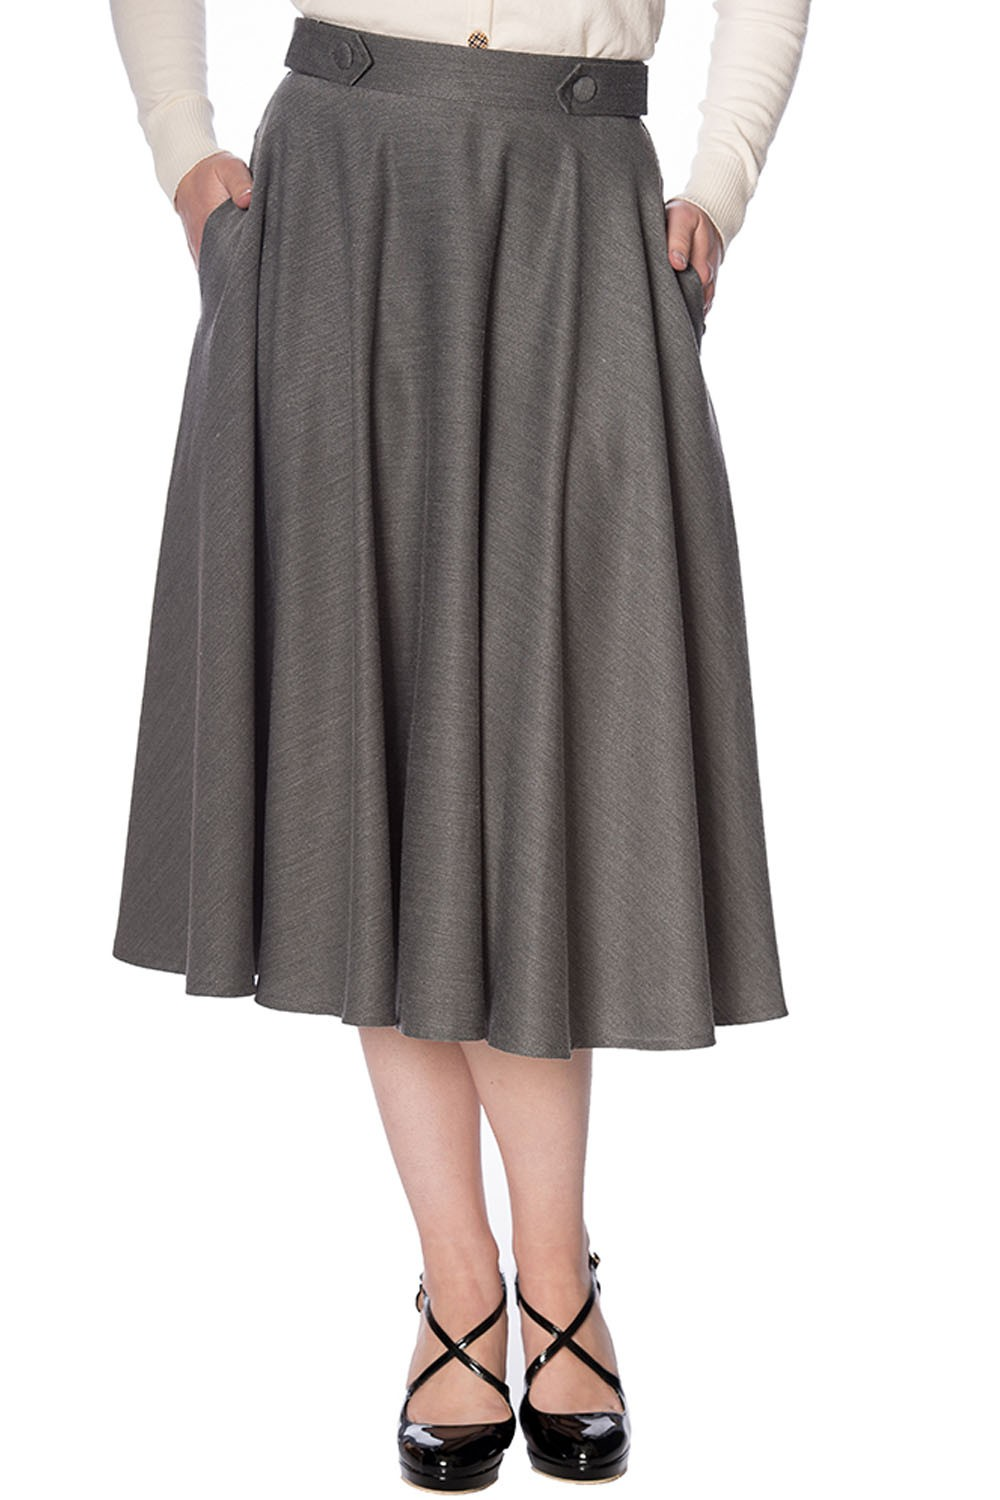 Banned Retro Grey Di Di Skirt